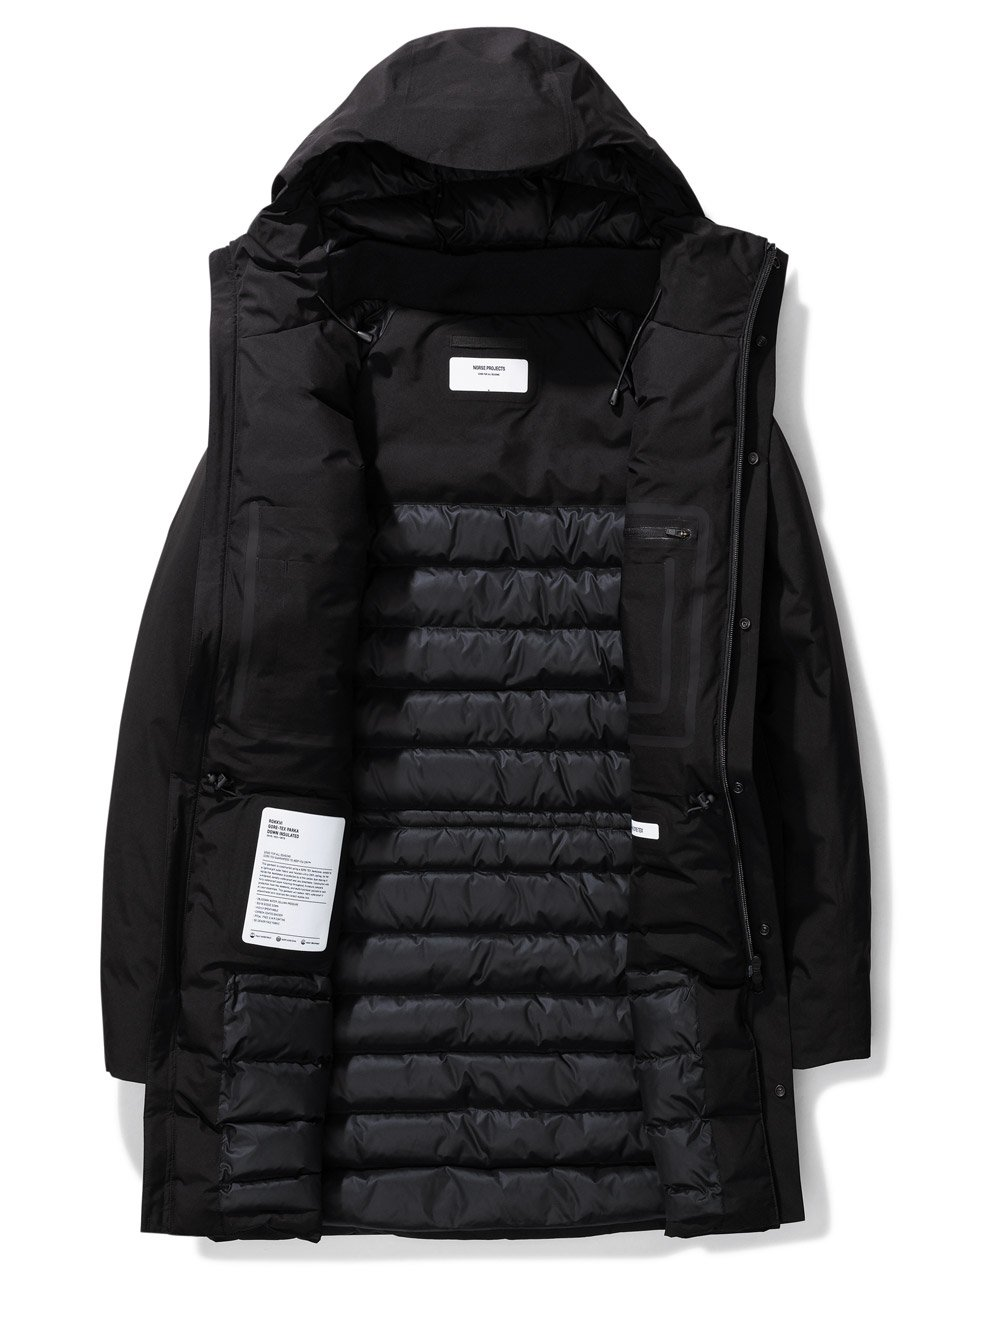 puffy jacket outerwear